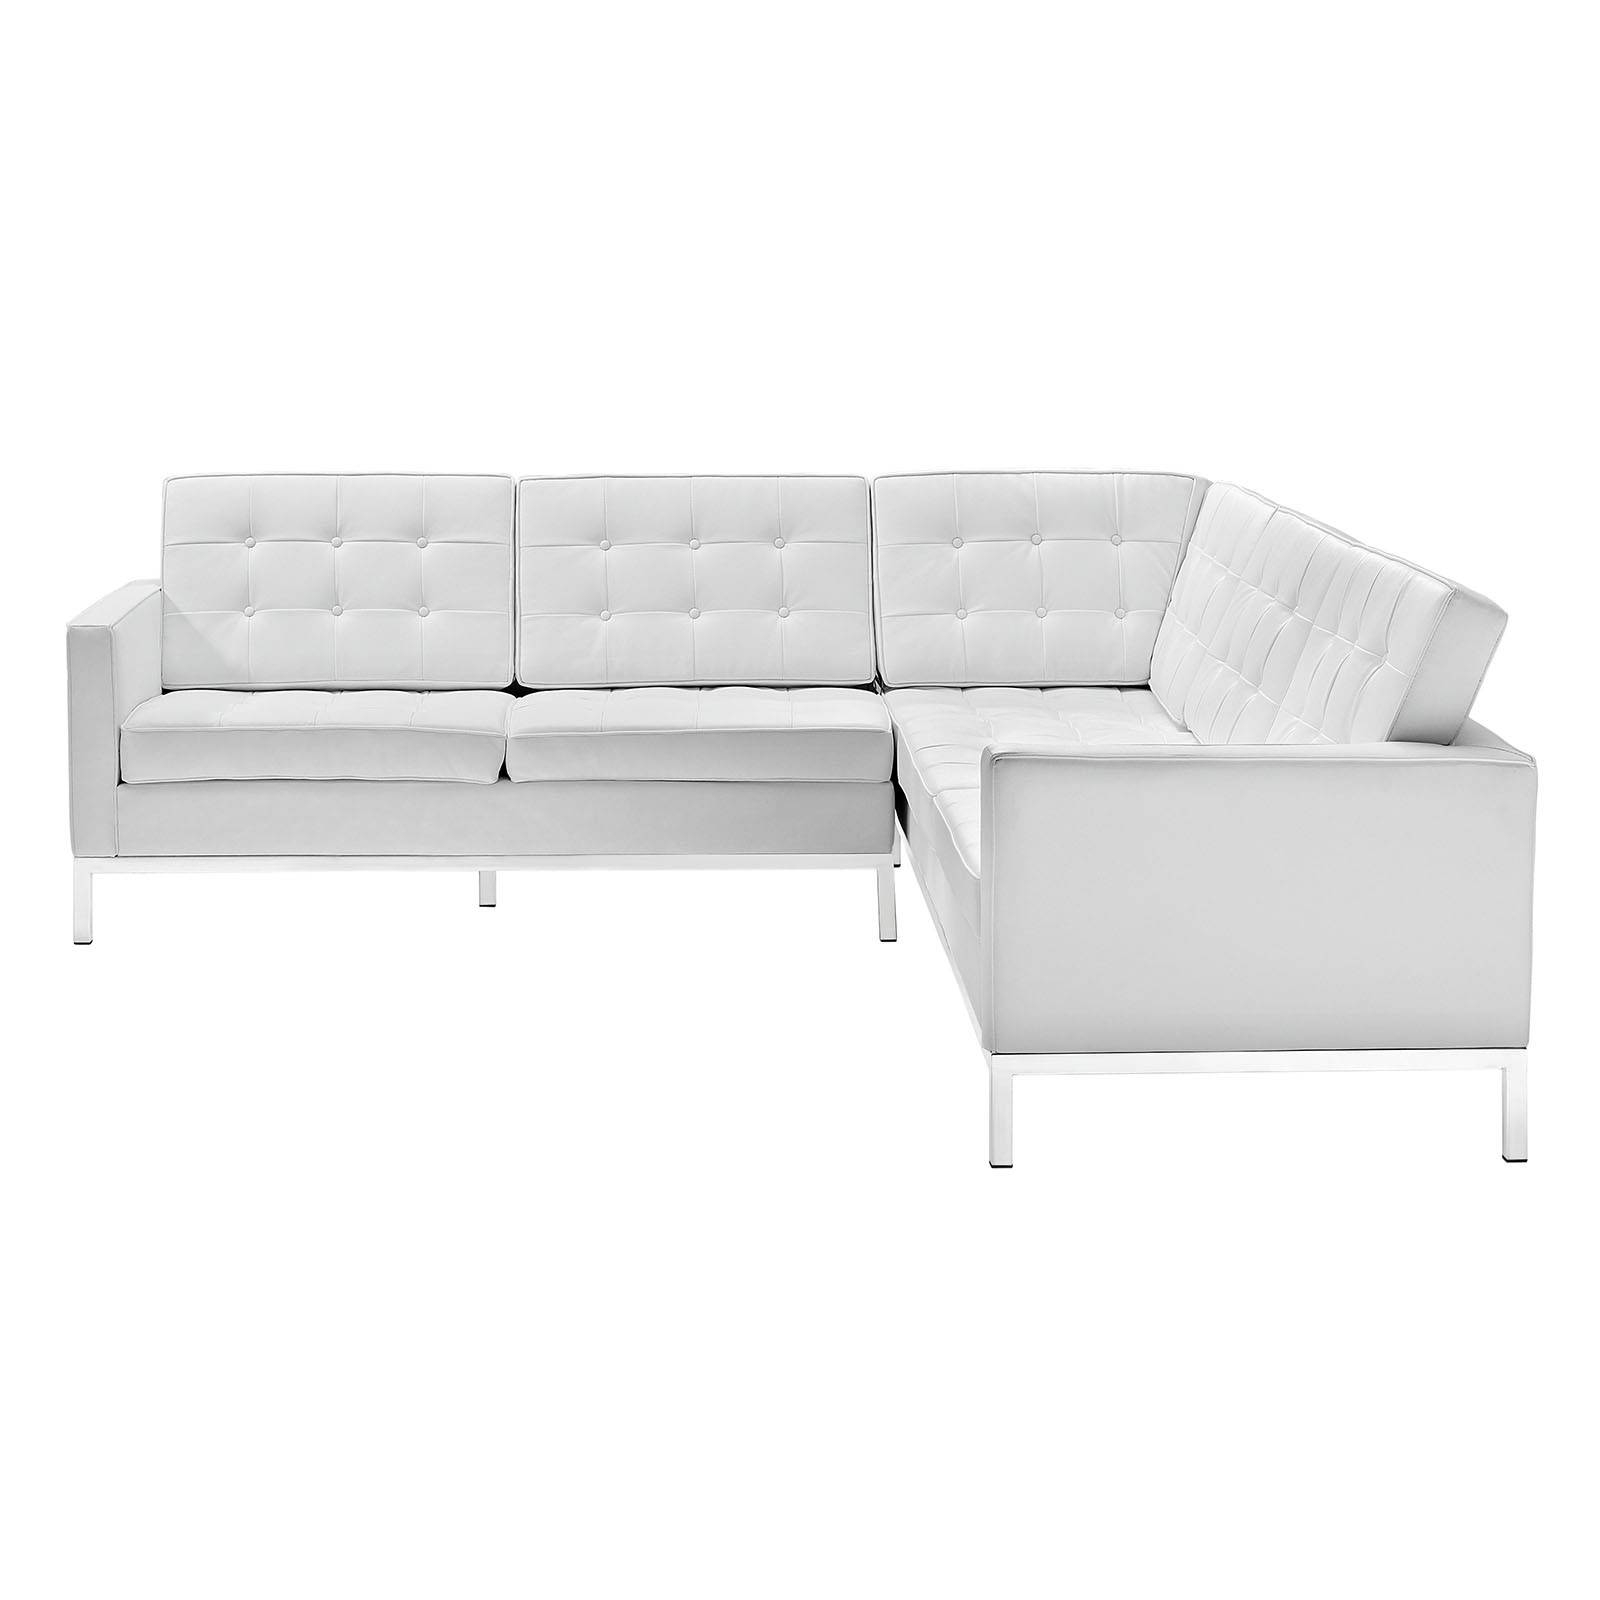 Loft L-Shaped Leather Sectional Sofa (Multiple Colors)Modway with Leather L Shaped Sectional Sofas (Image 25 of 30)